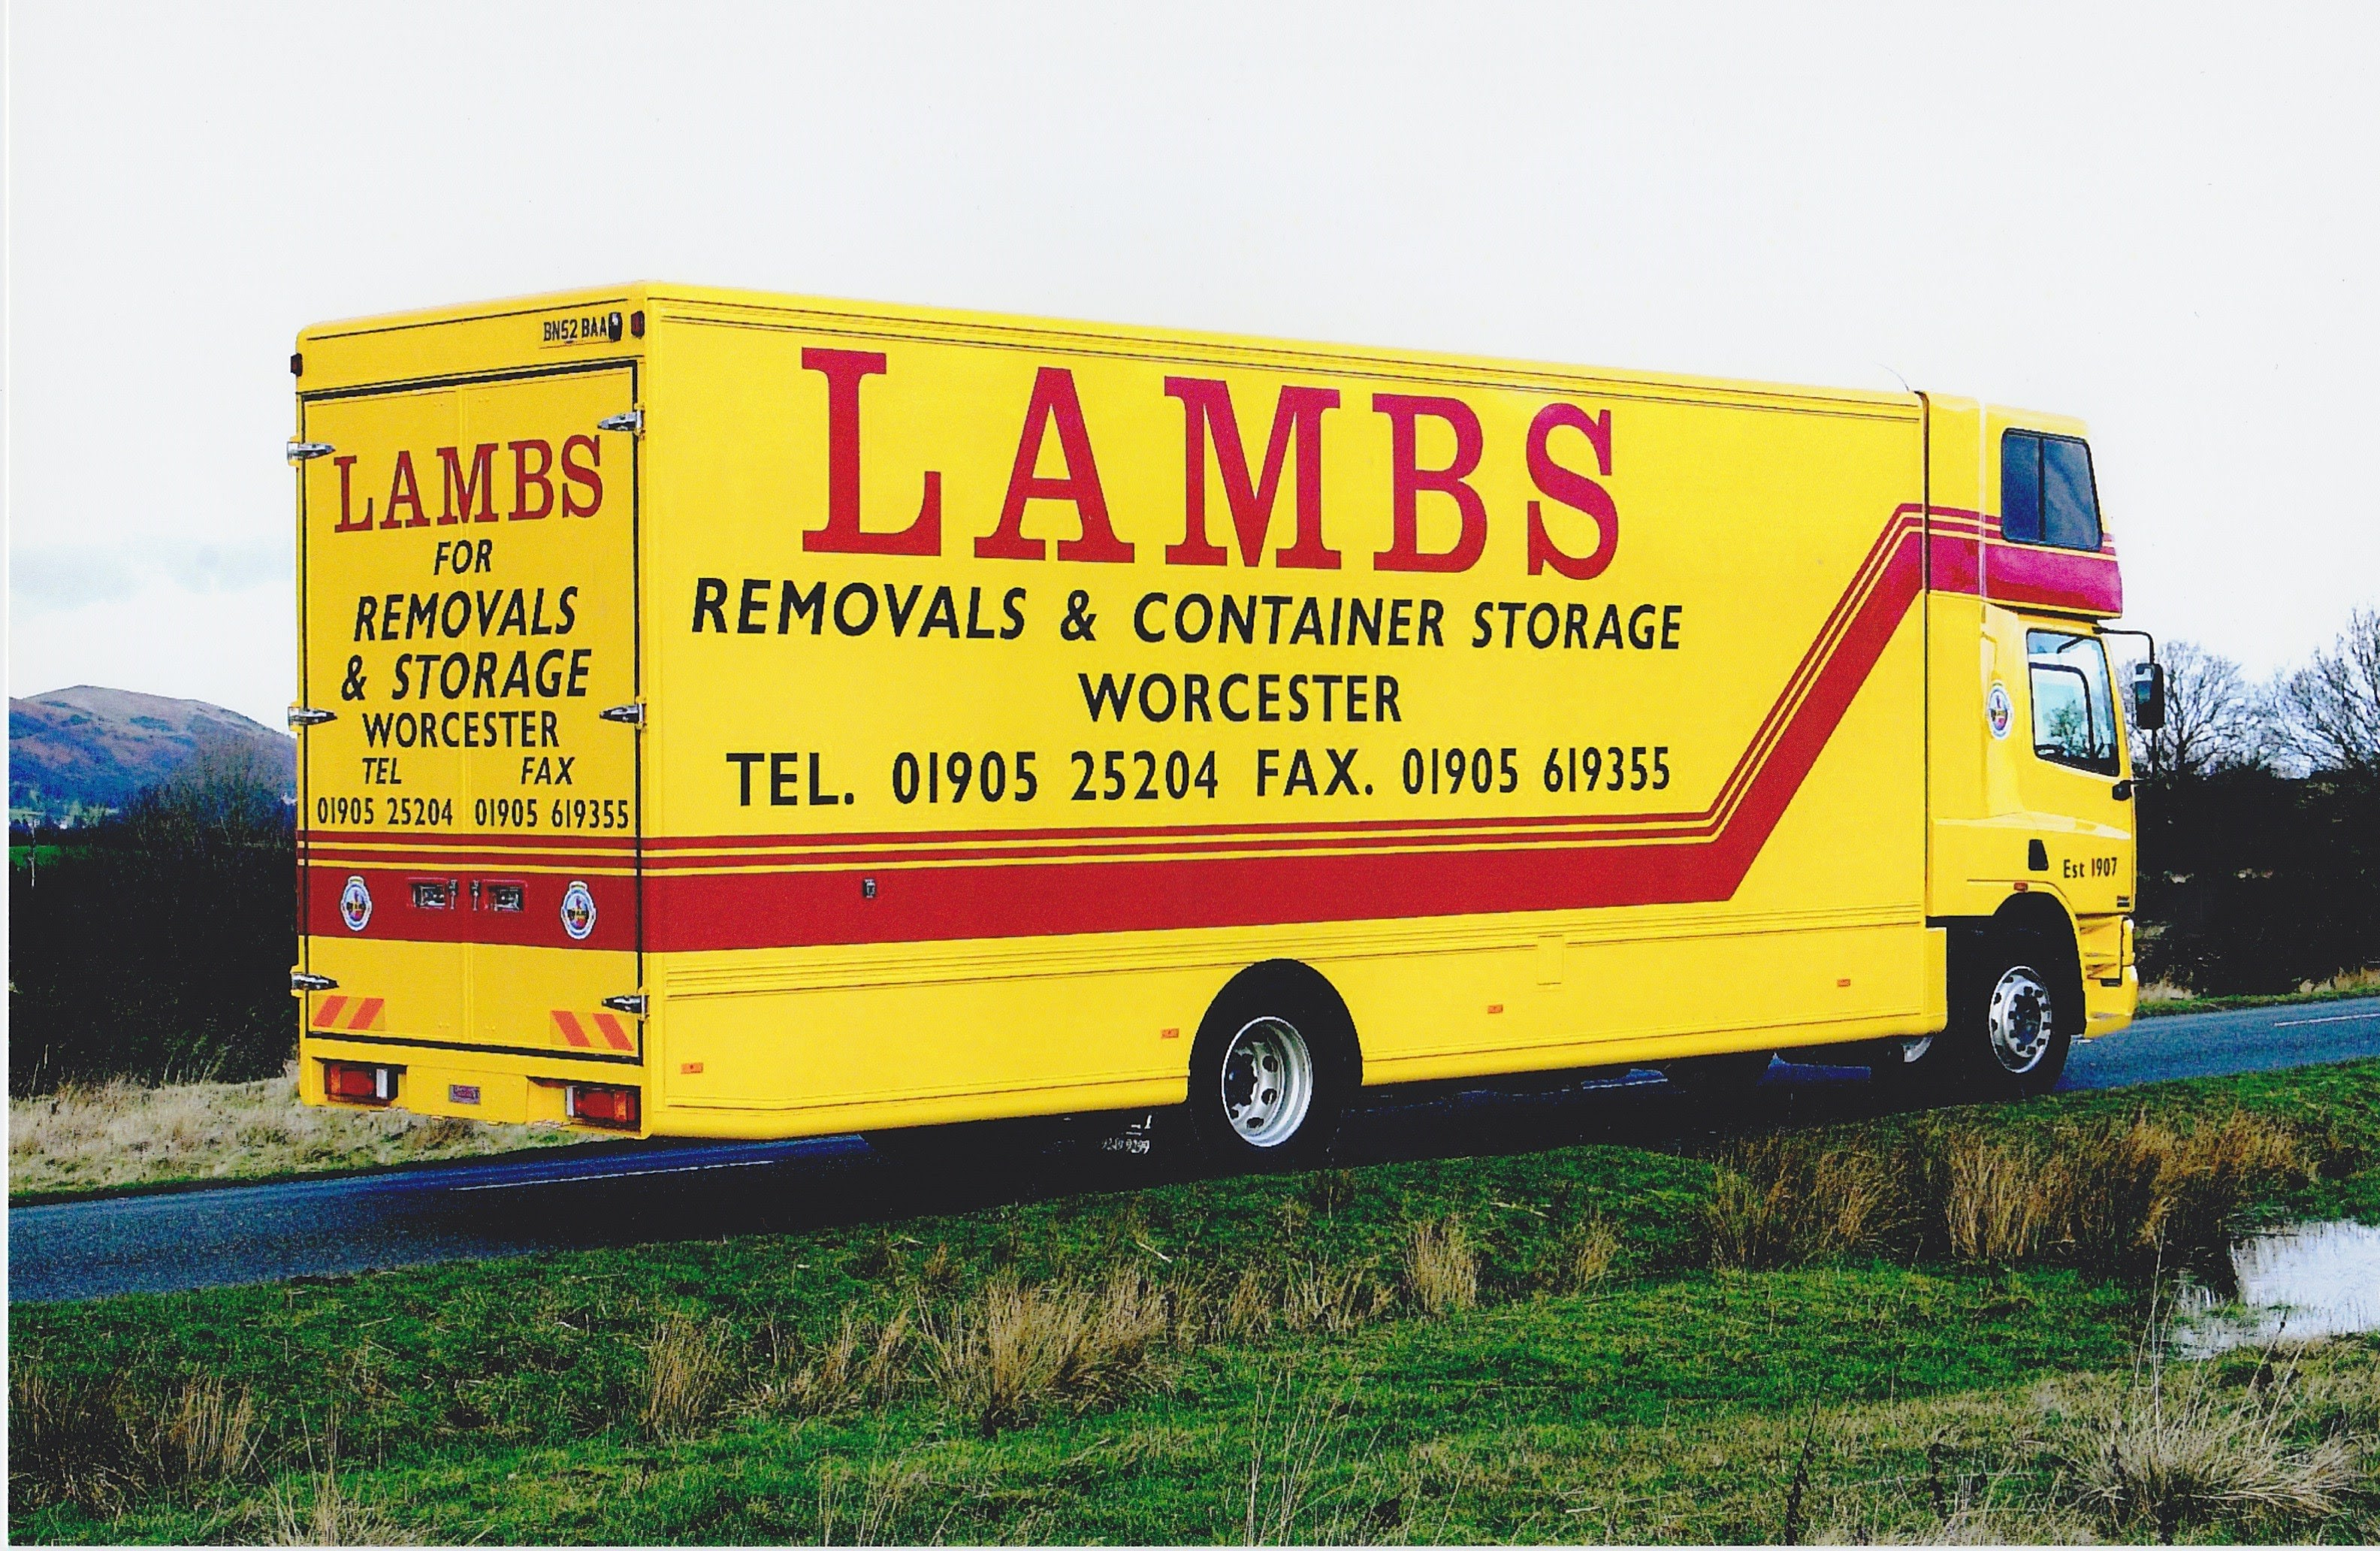 Lambs removals